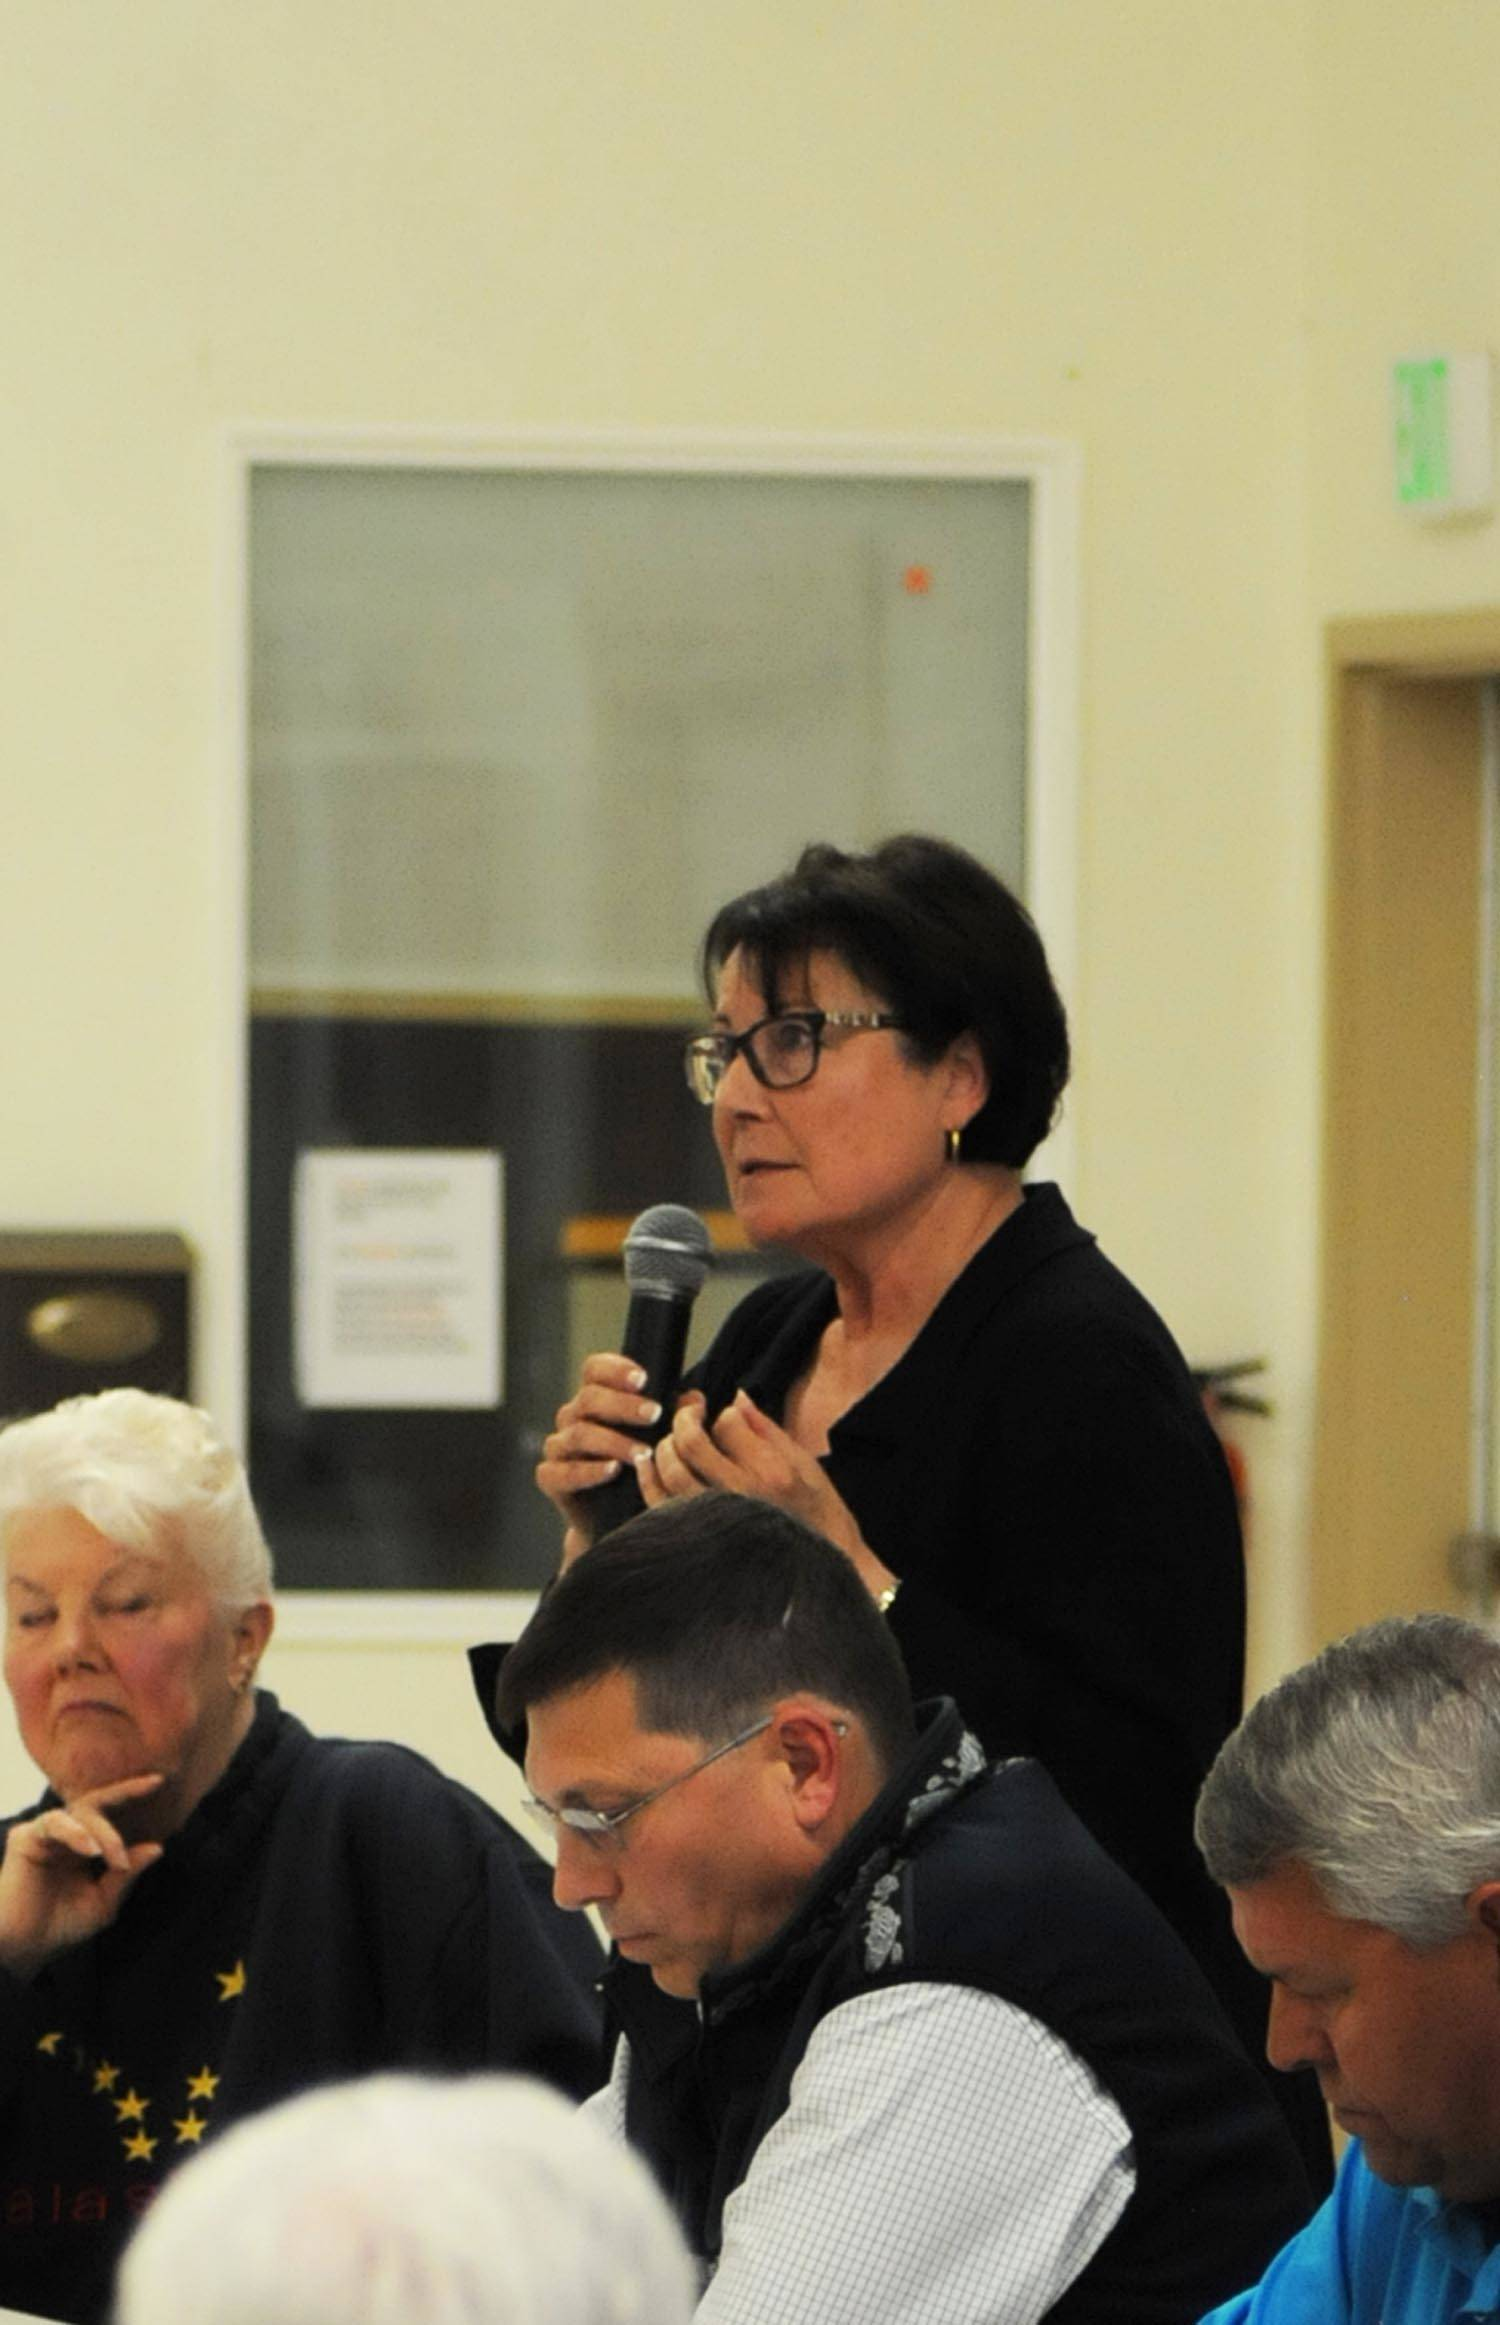 Linda Hutchings (standing), a candidate for Kenai Peninsula Borough mayor, answers a question during a forum with fellow candidates Dale Bagley (center) and Charlie Pierce (right) at the Funny River Community Center on Aug. 16, 2017 in Funny River, Alaska. (Photo by Elizabeth Earl/Peninsula Clarion, file)